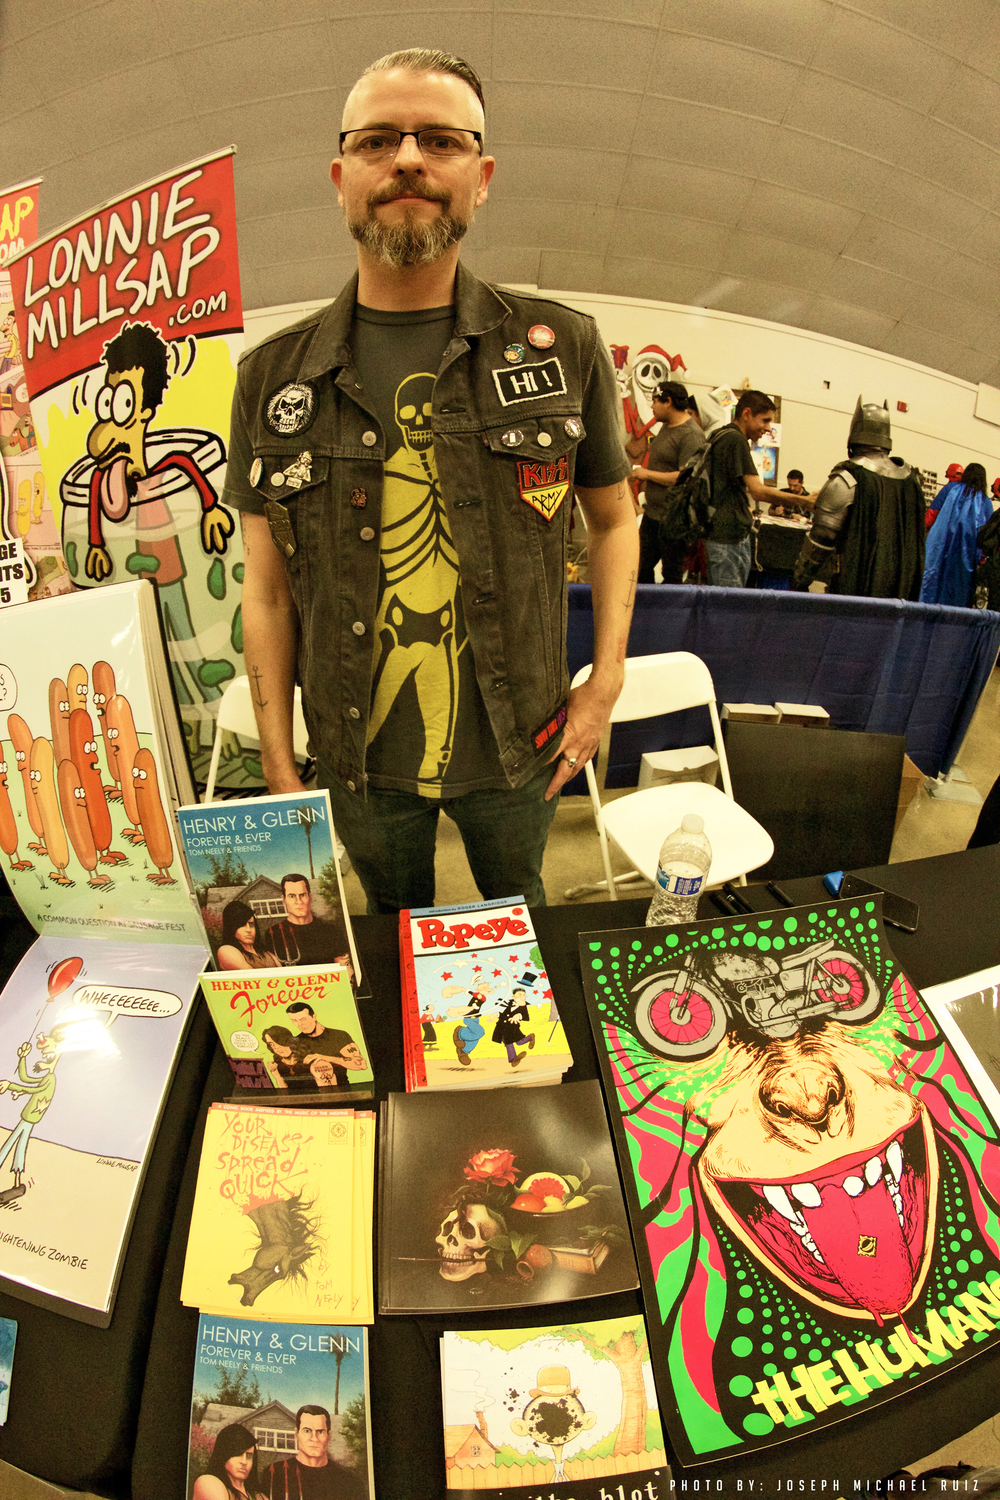 Tom Neely with his other works: The Blot, The Wolf, Popeye Collection (IDW -featuring Tom and several other artists), Your Disease Spread Quick, and the cult classic Henry & Glenn Forever & Ever.